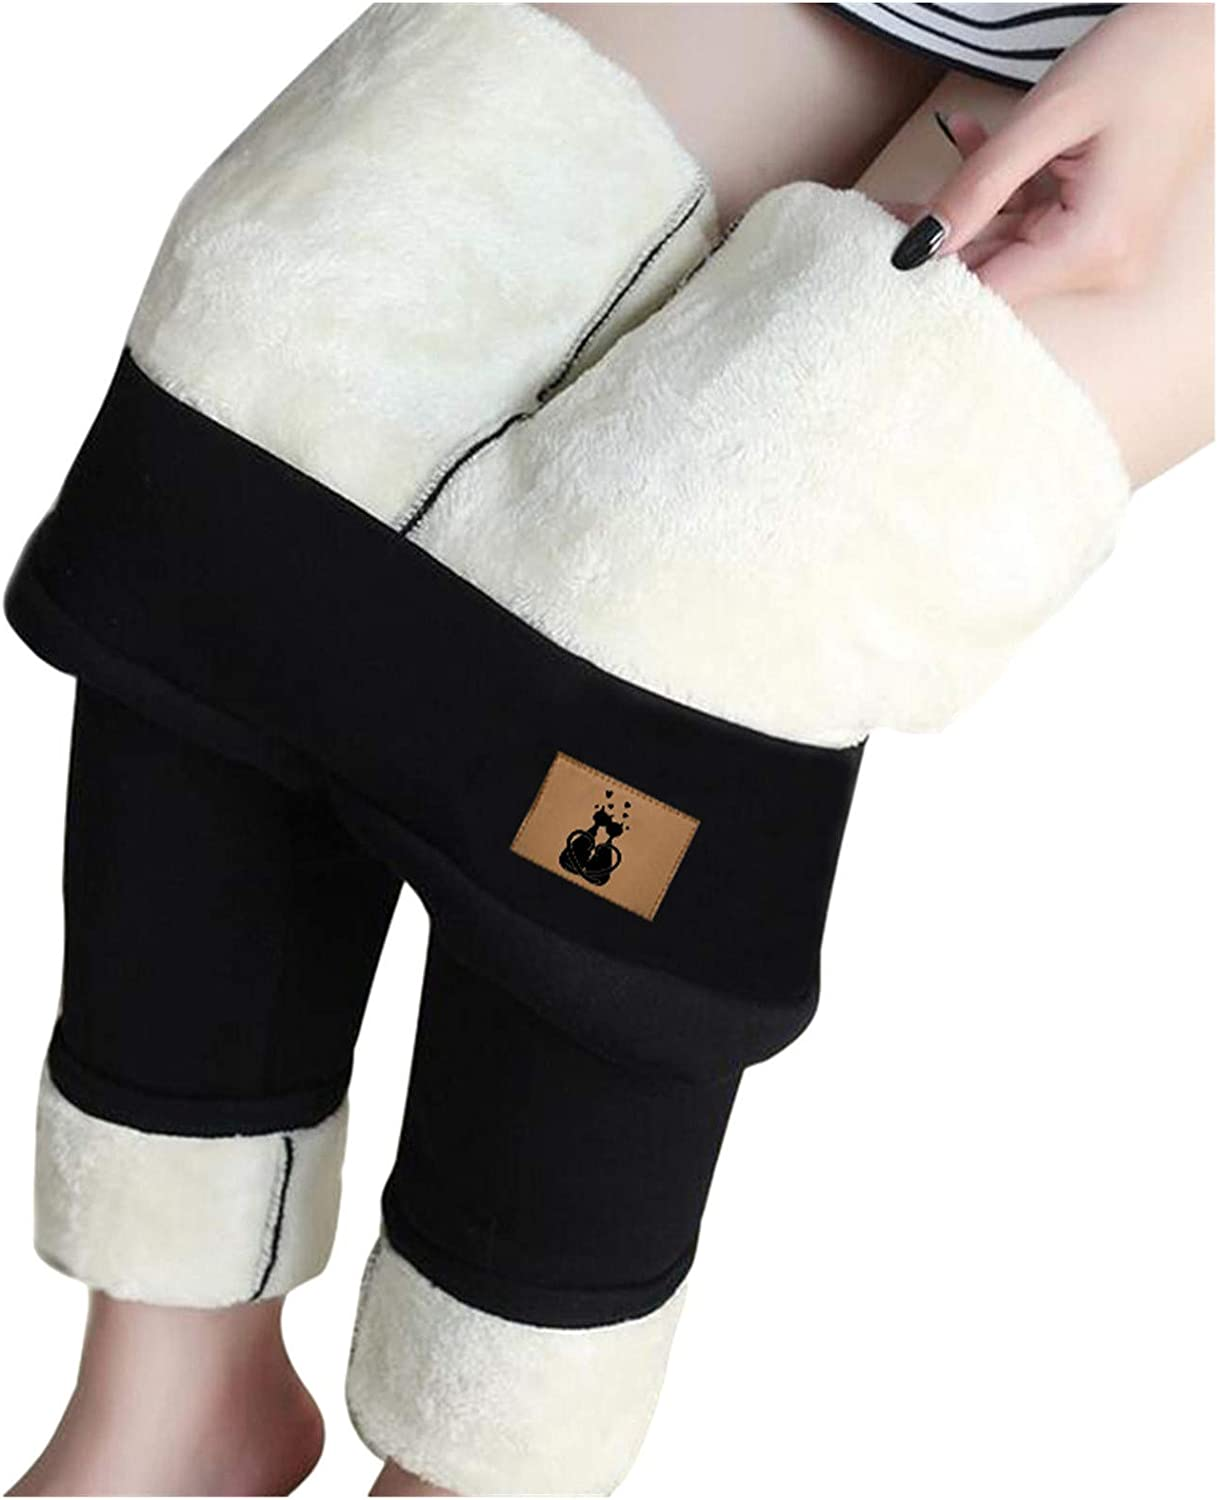 Winter Sherpa Fleece Lined Leggings for Women,Stretchy Thick Cashmere Leggings Plush Warm Thermal Pants